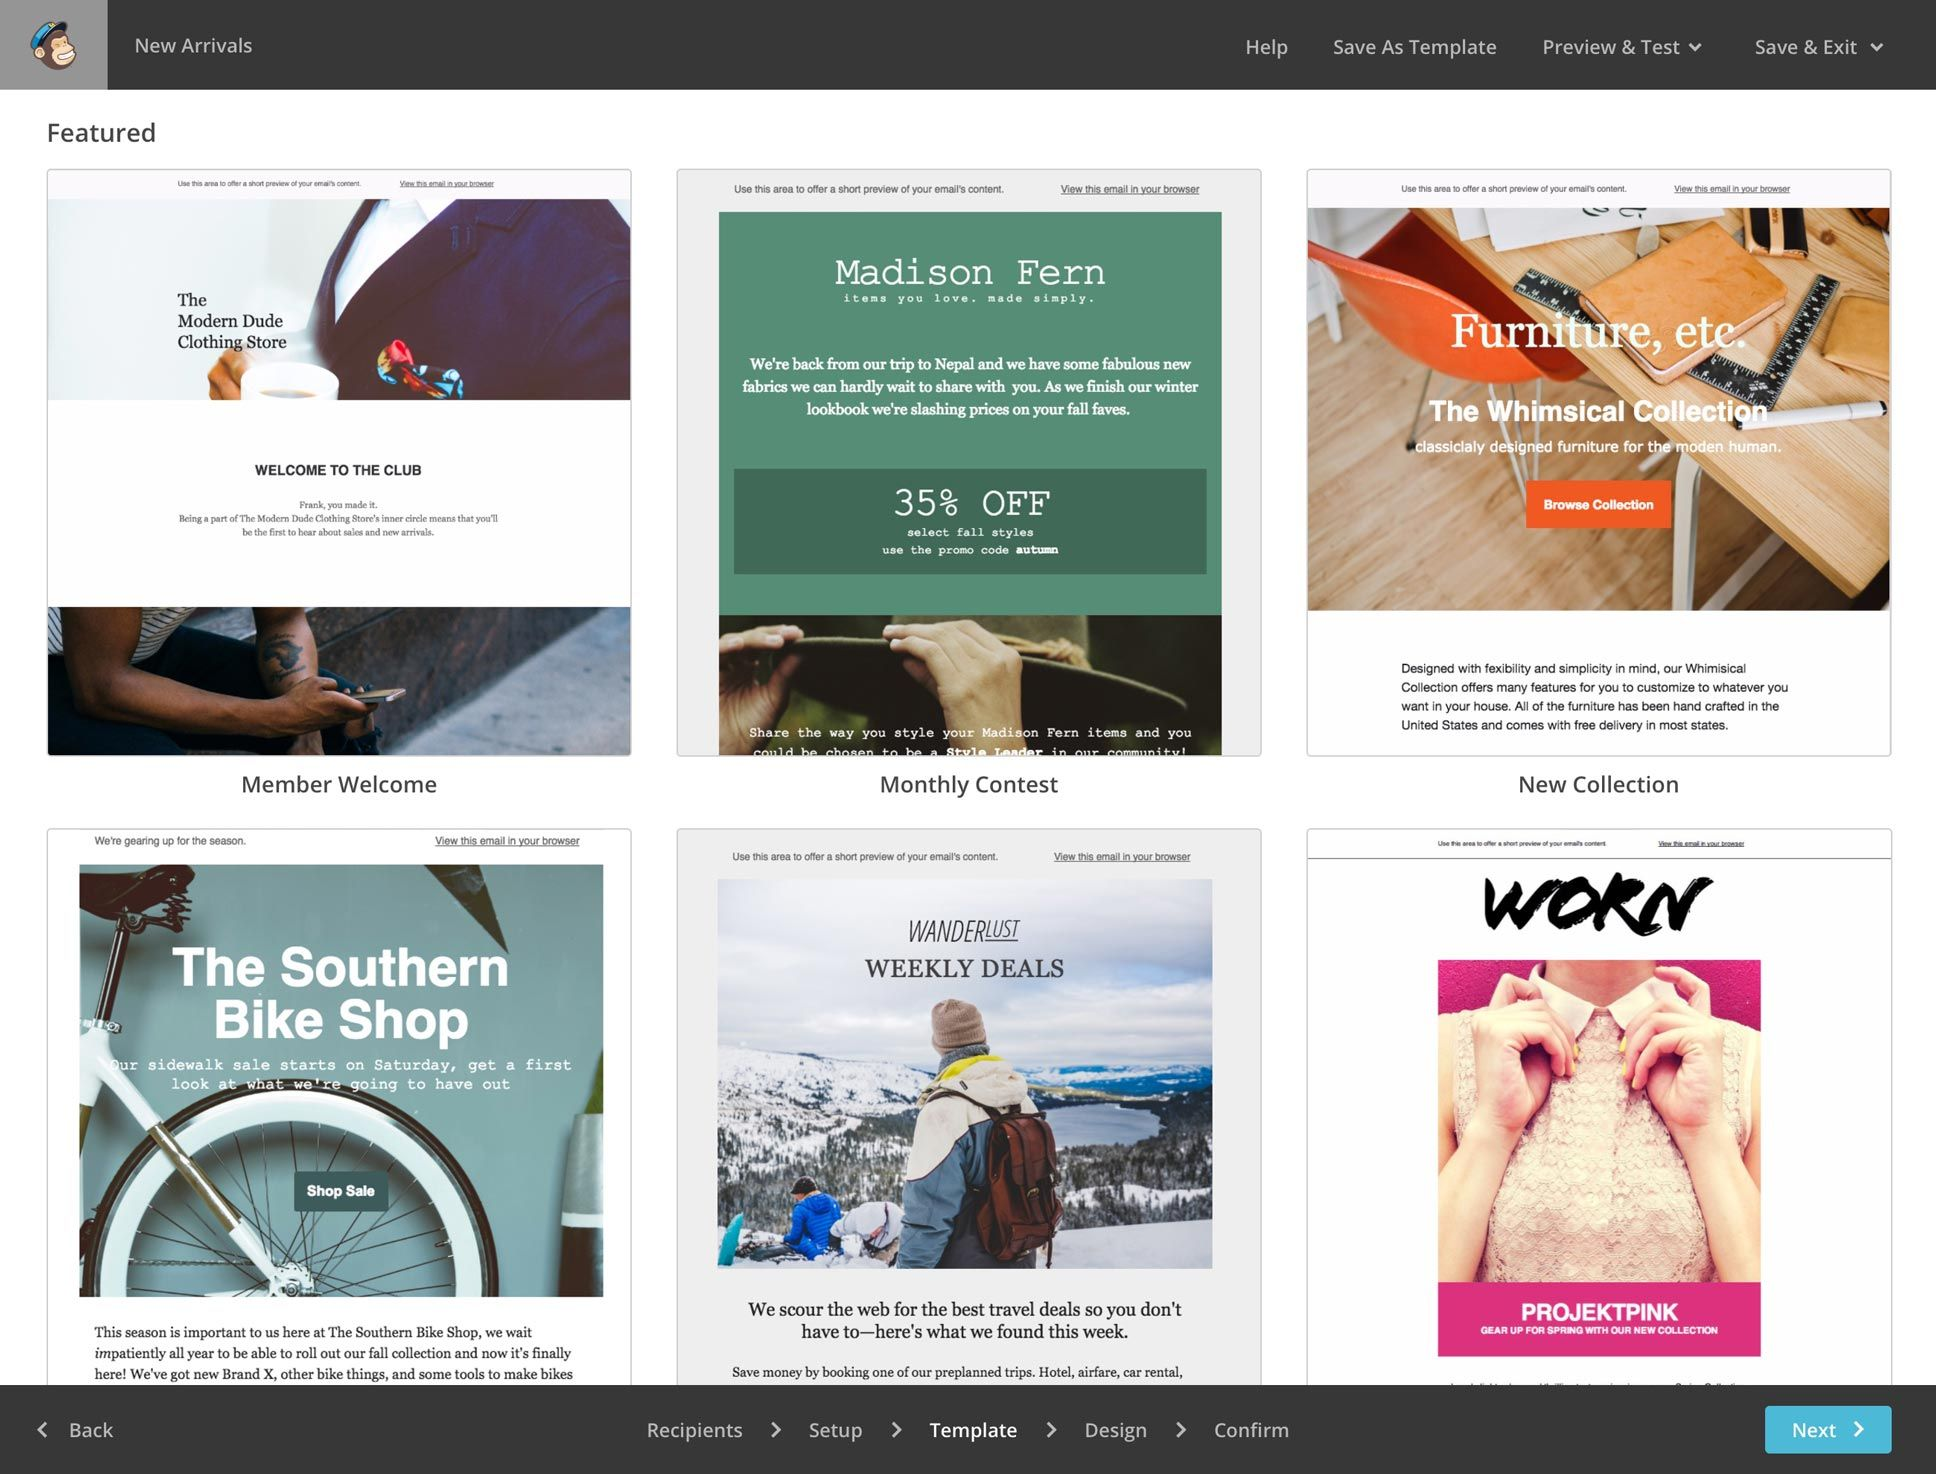 MailChimp makes designing templates for your business emails simple ...